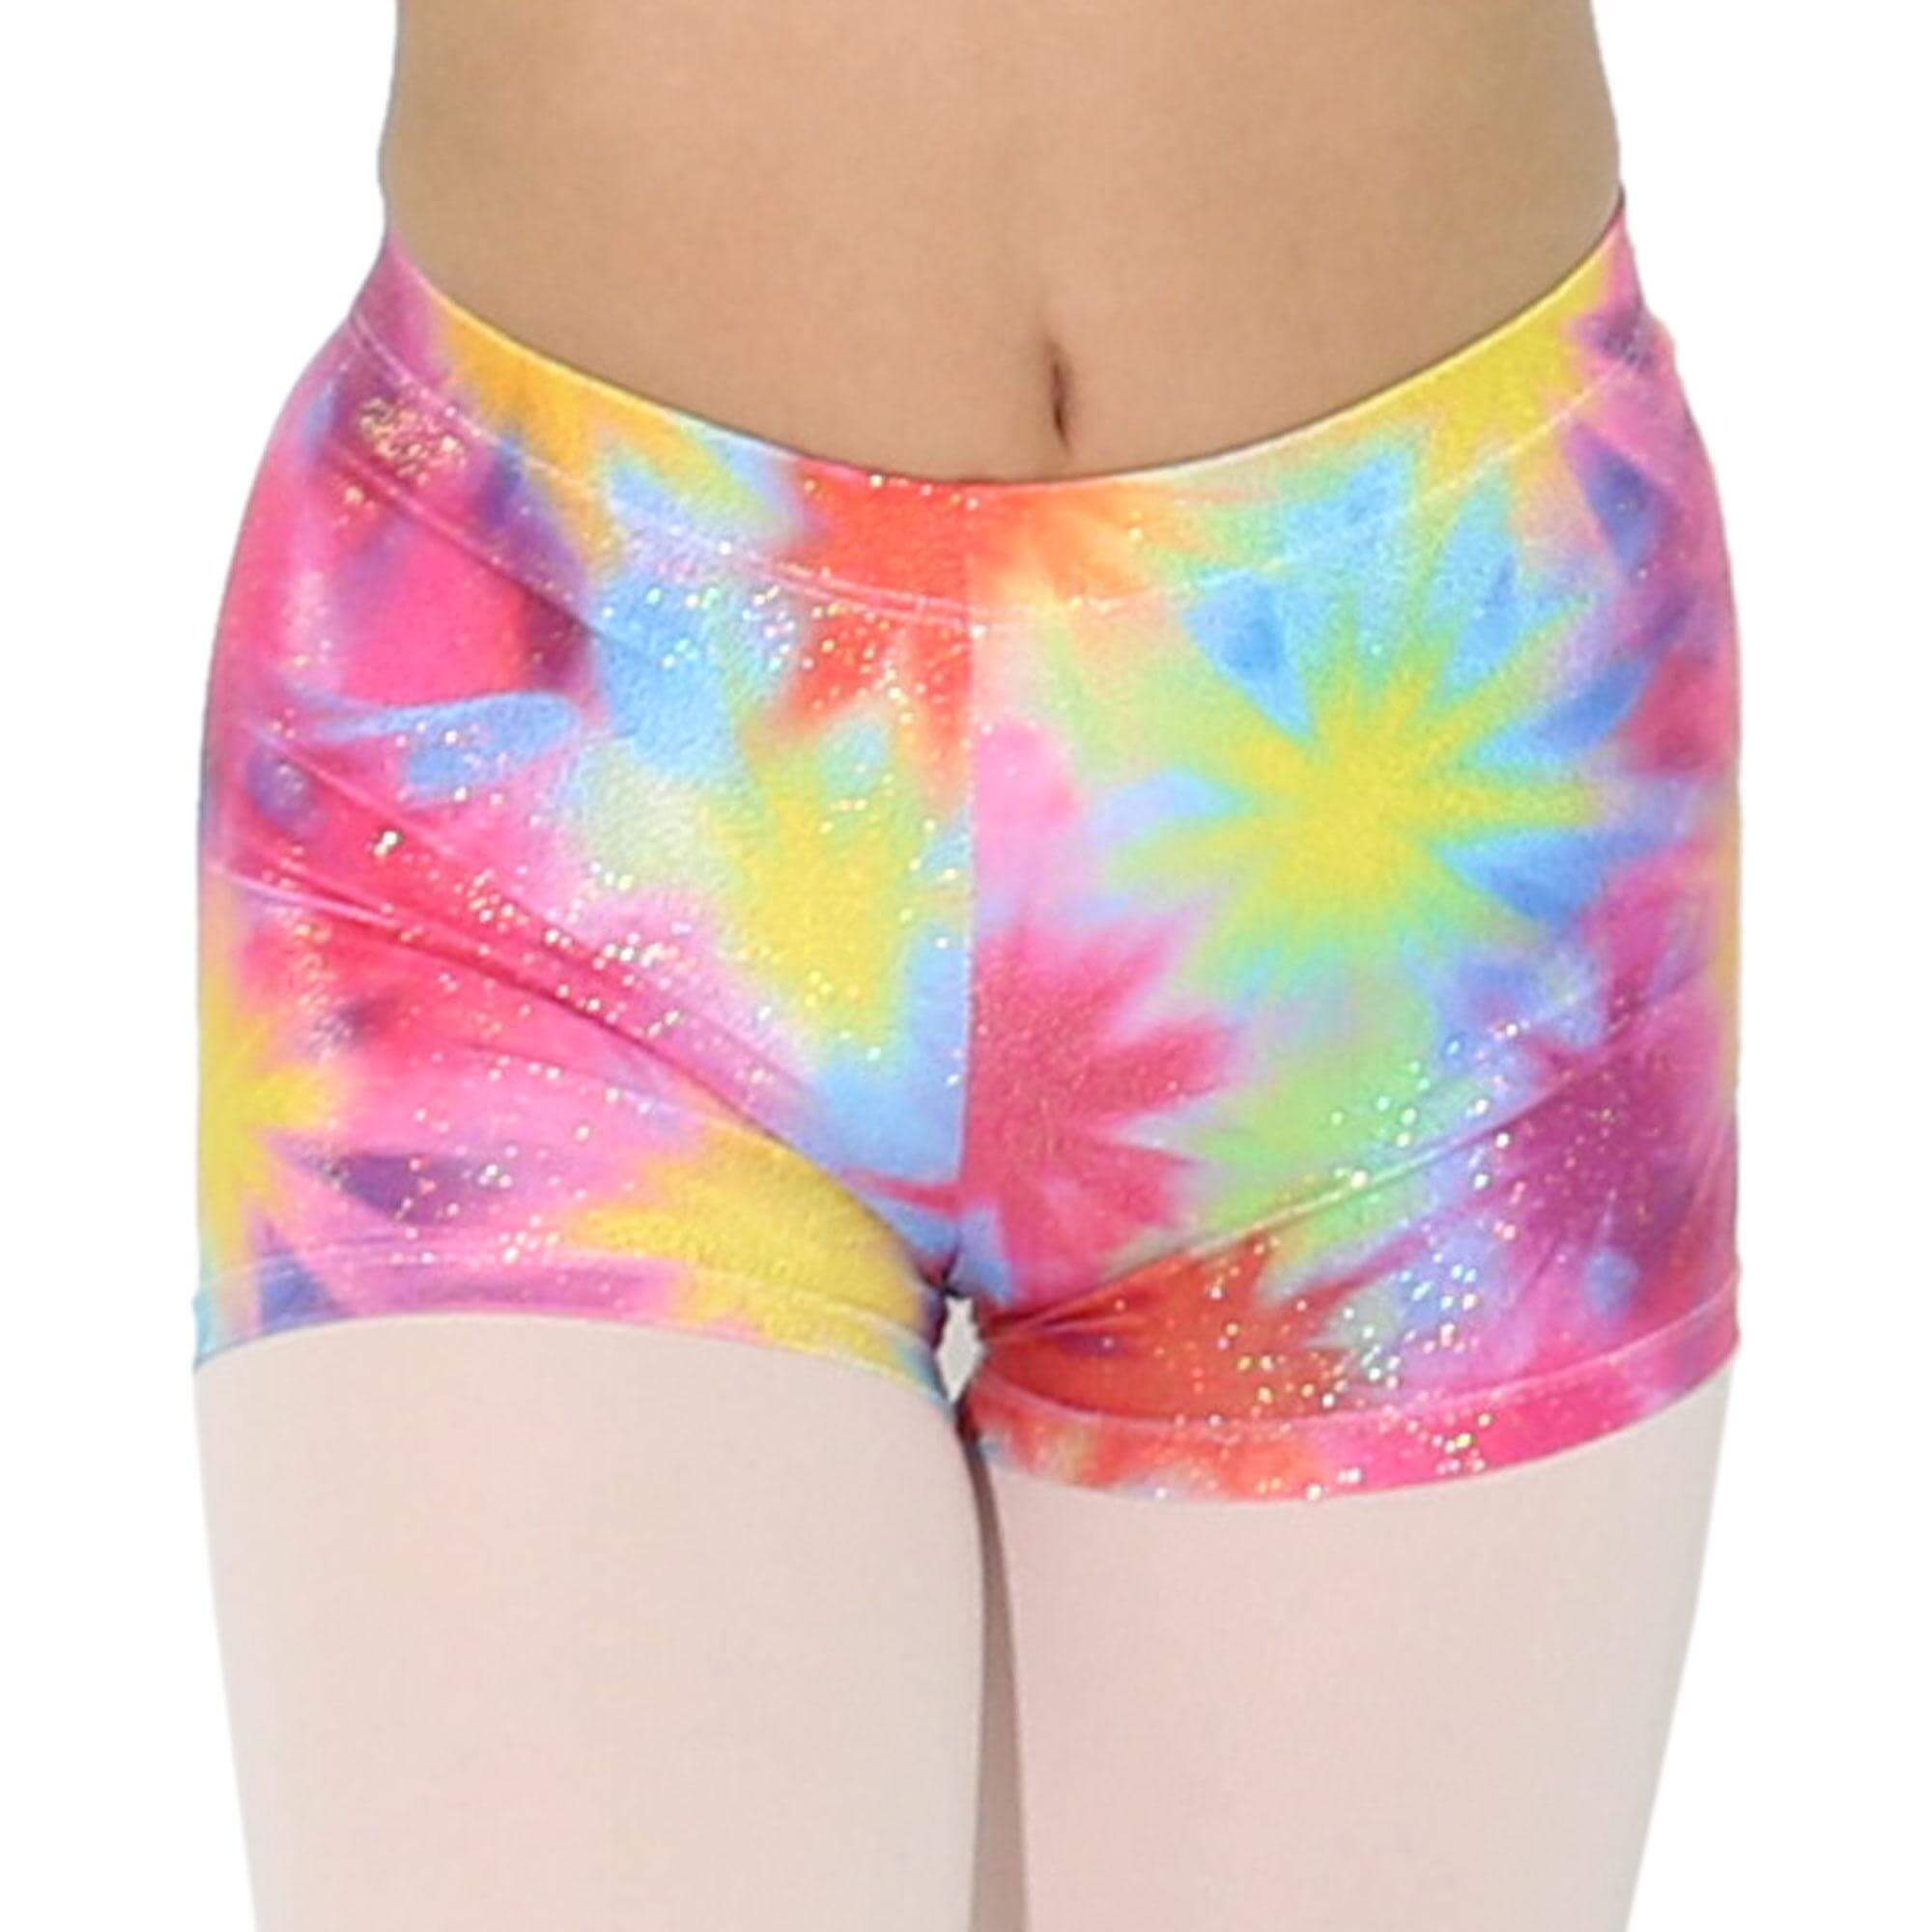 Reflectionz Multicolor Starburst Shorts